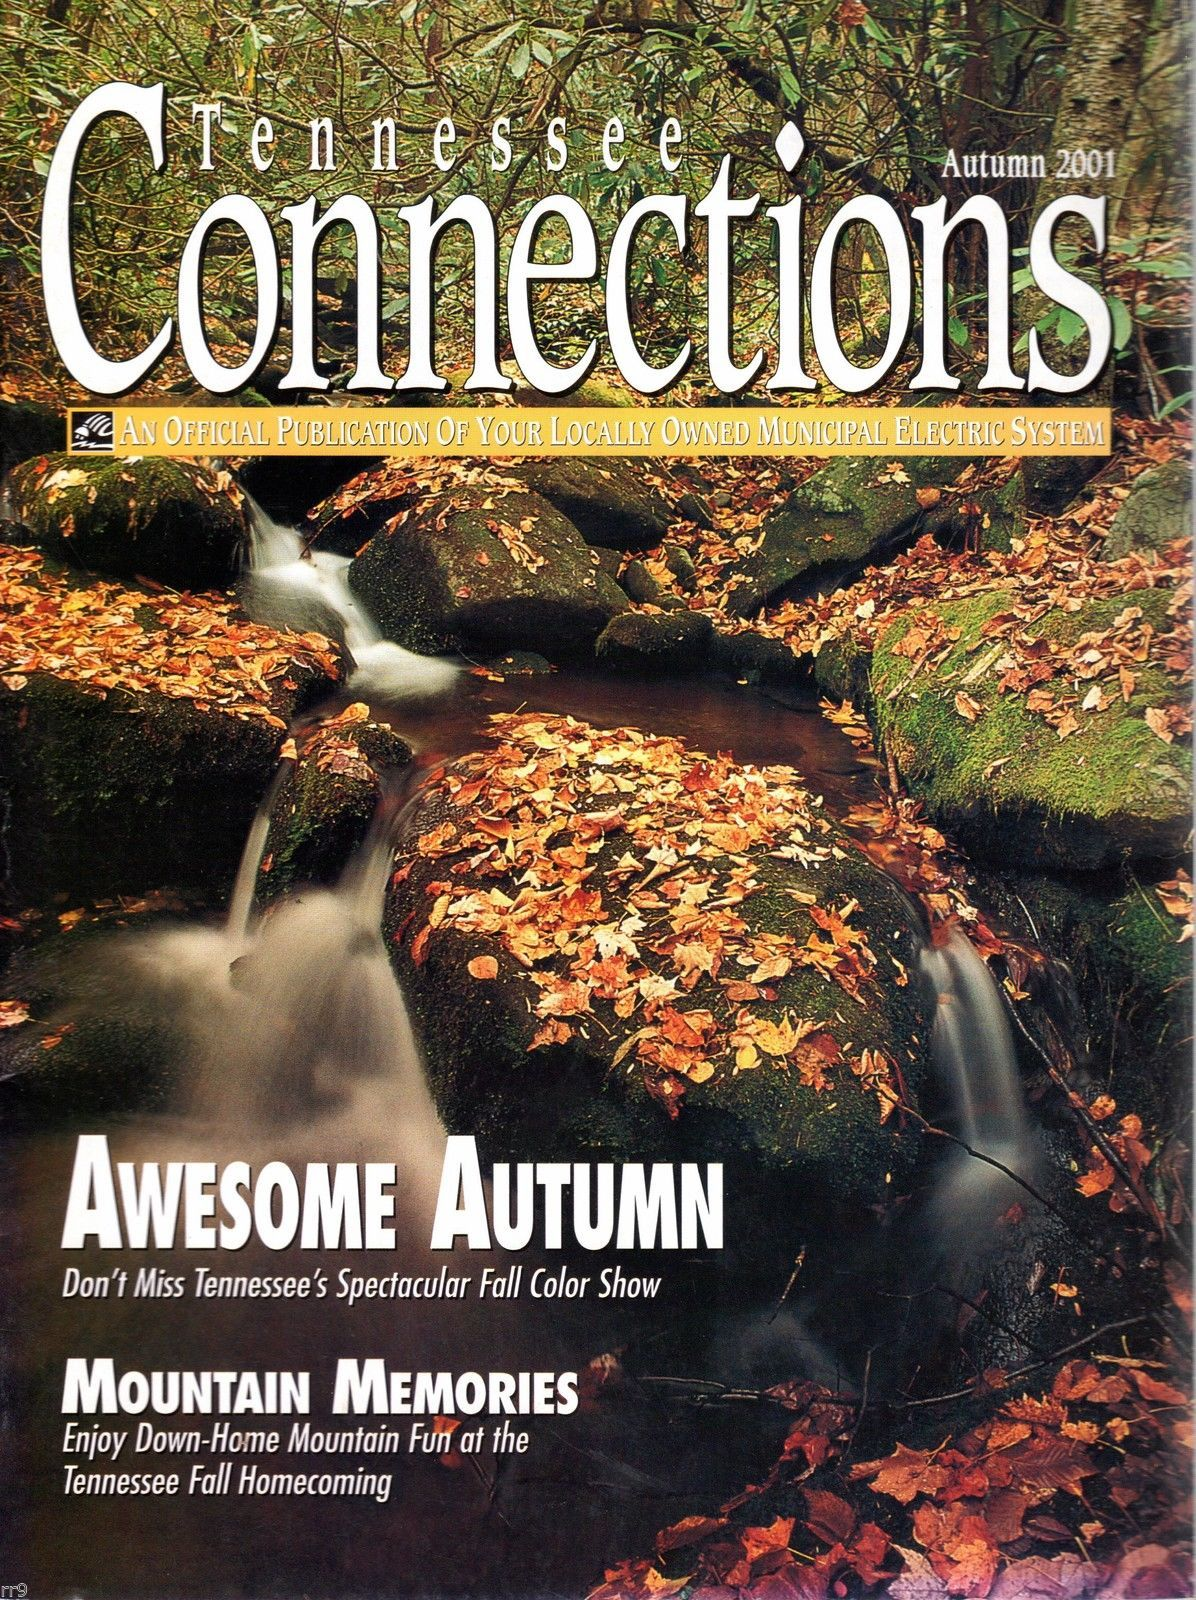 Primary image for Tennessee Connections Magazine Autumn 2001 Municipal Electric System